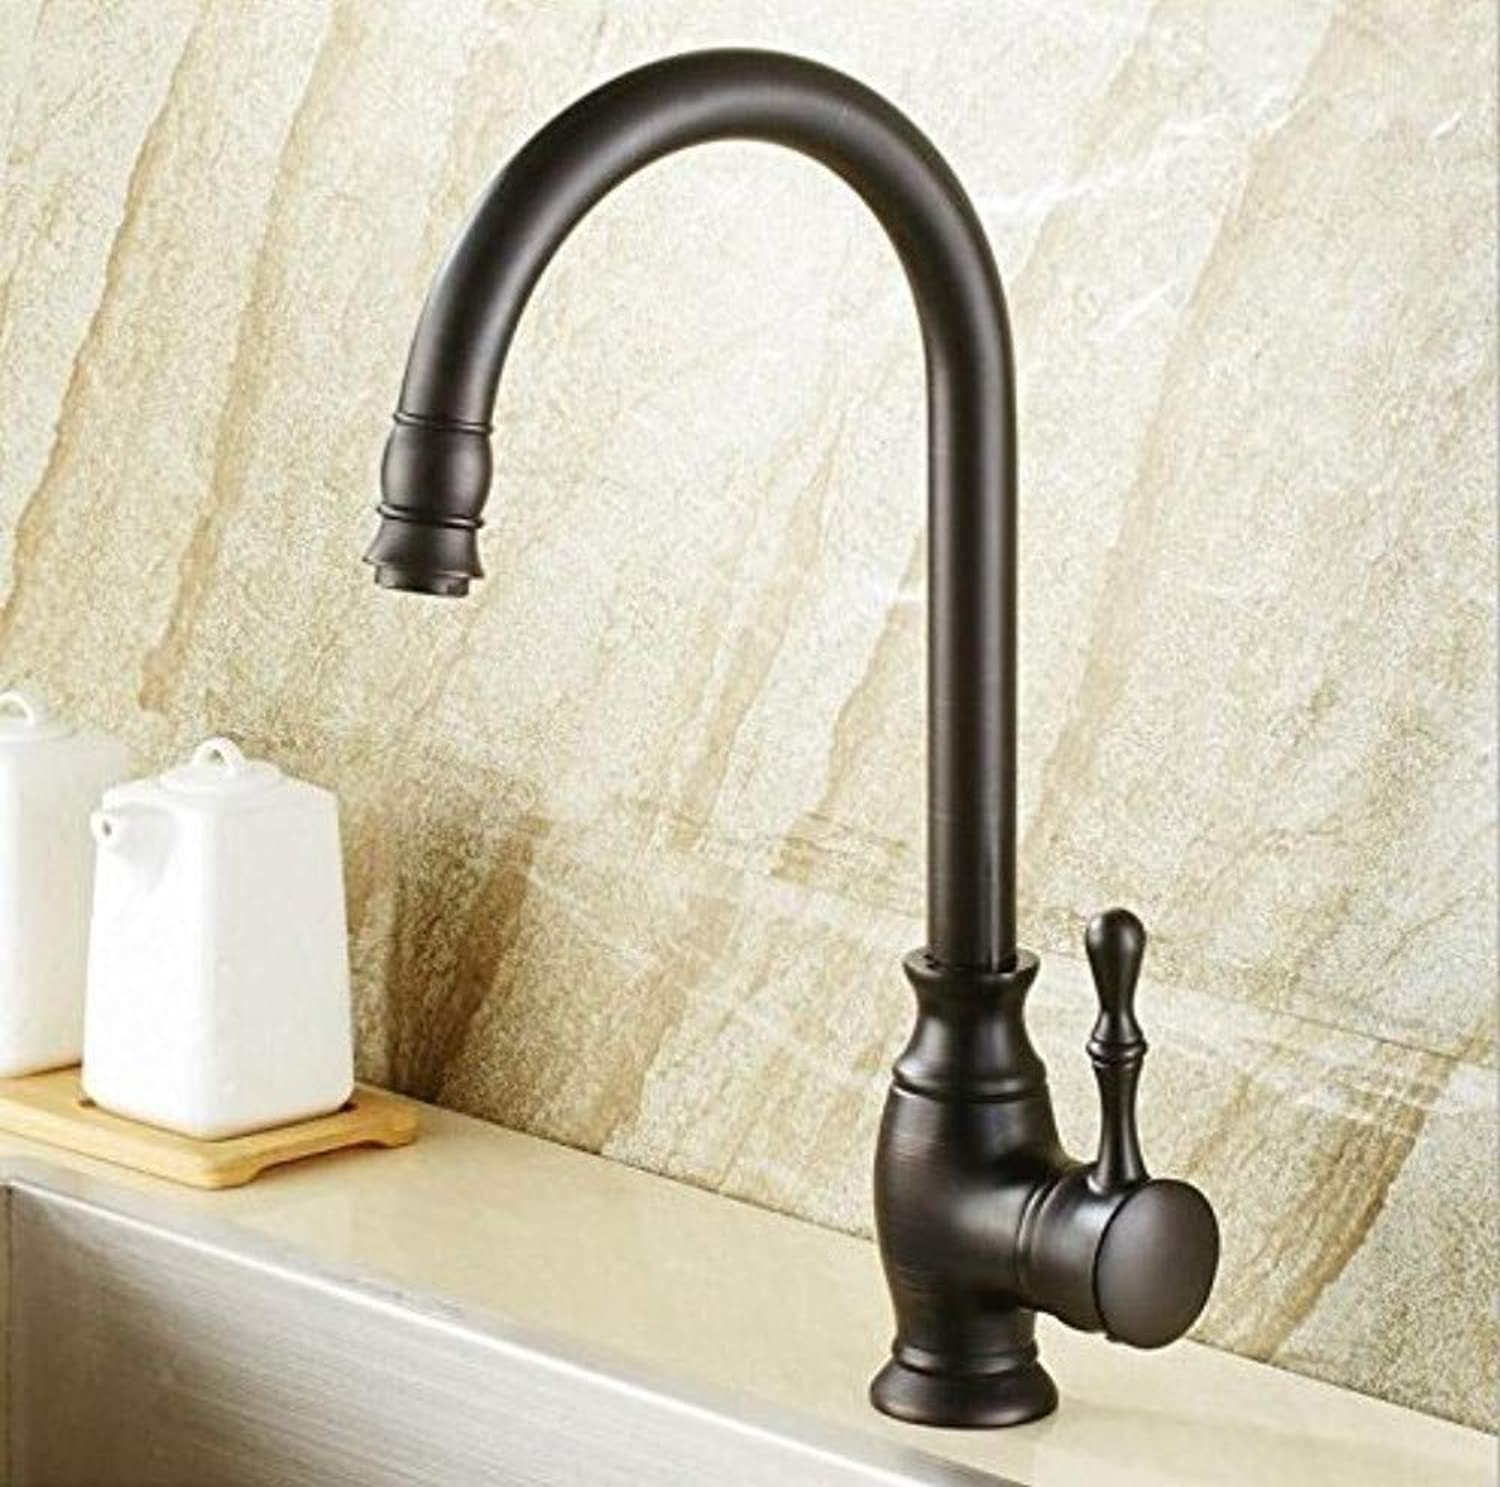 360° redating Faucet Retro Faucetkitchen Sink Taps Hot and Cold Single Lever Hot and Cold Kitchen Faucet